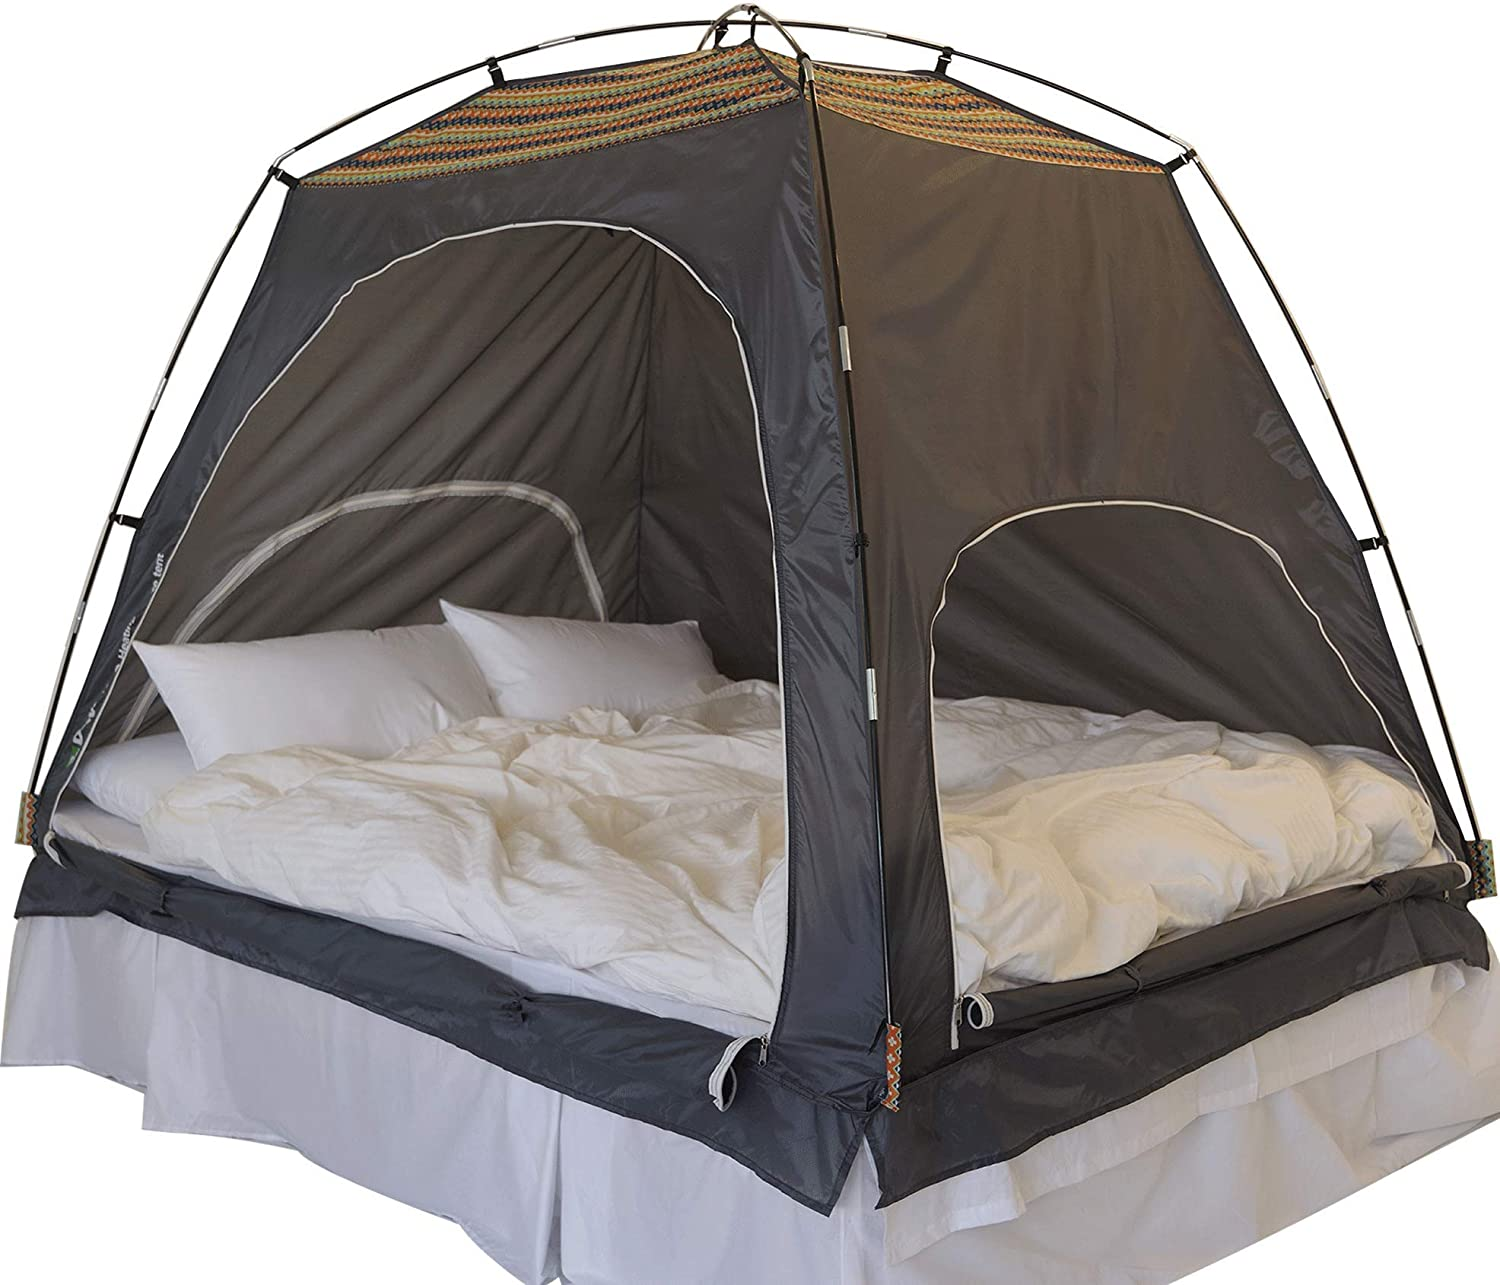 Daverse Floorless Indoor Privacy Tent on Bed Blackout keep Warm Play Tent with FREE LED Light (Medium Double Full Queen bed) (Deep Green)